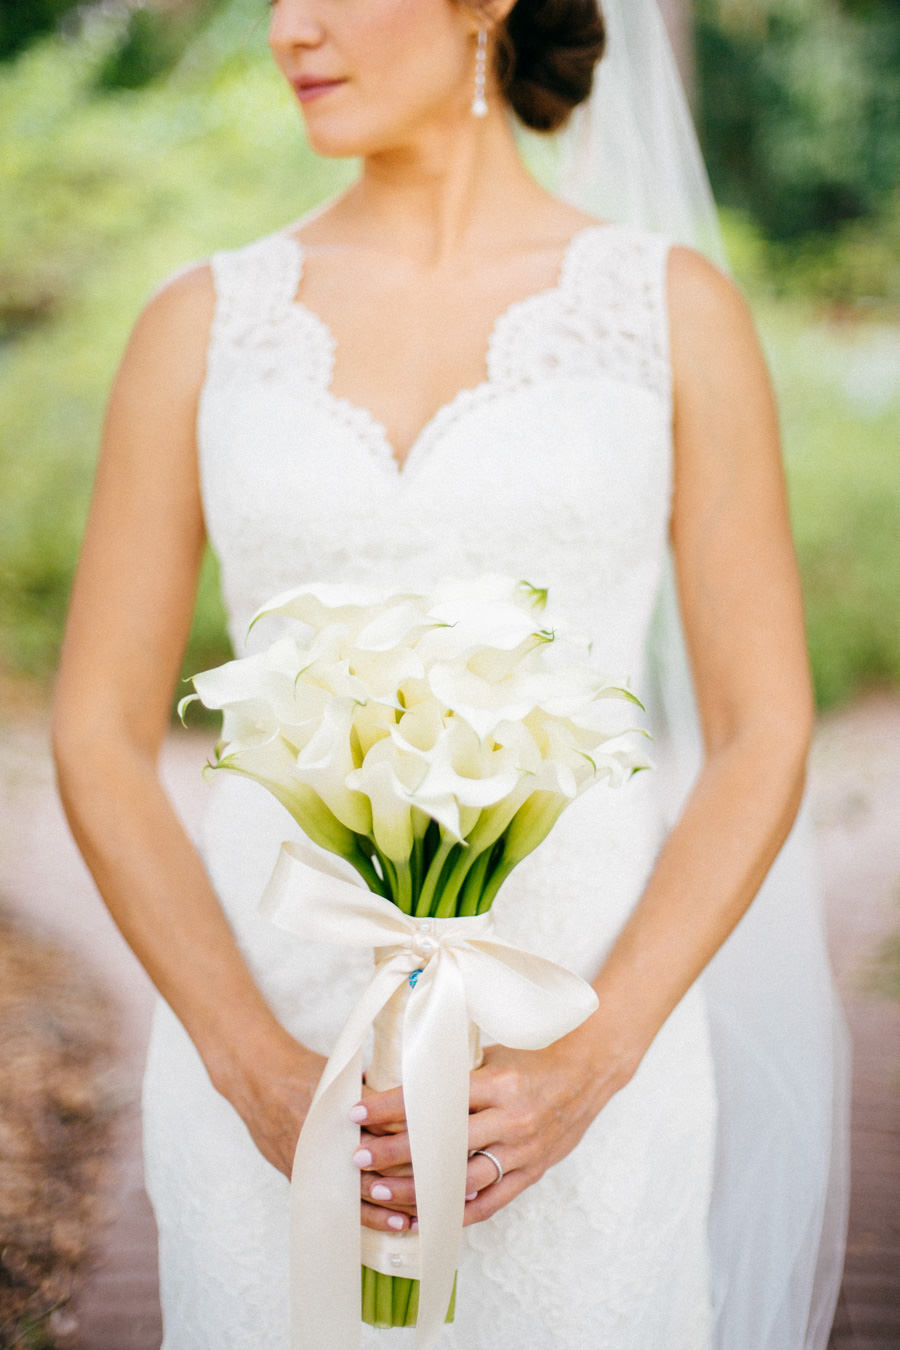 Outdoor, Bridal Wedding Portrait in Ivory, Lace Augusta Jones Wedding Dress, Chapel Length Veil and White Calla Lily Bridal Bouquet